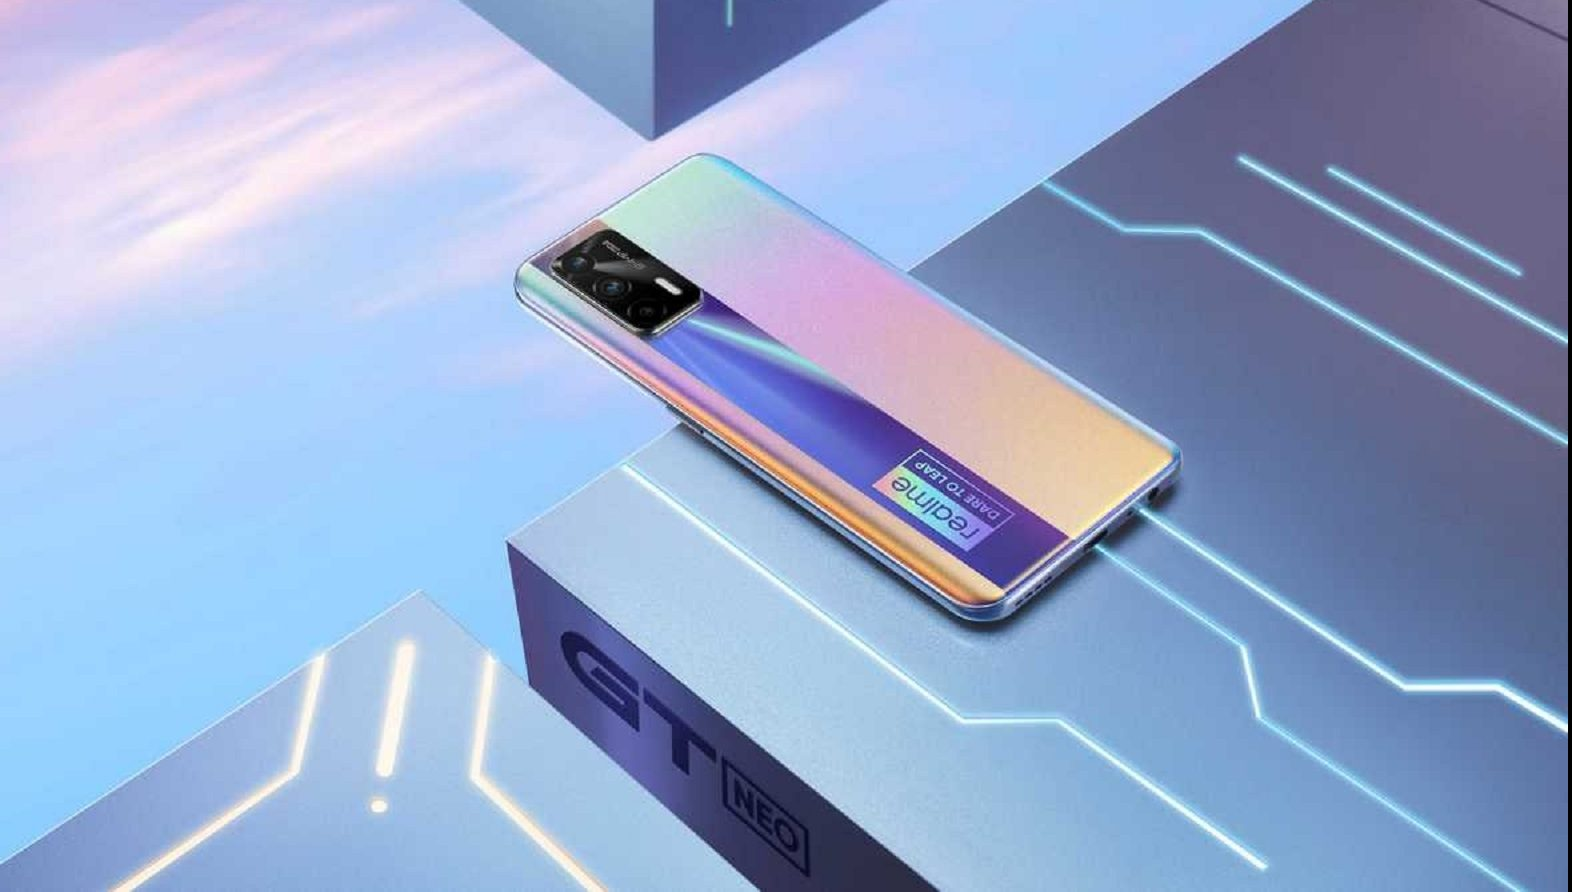 The first post showing the design of the Realme GT Neo